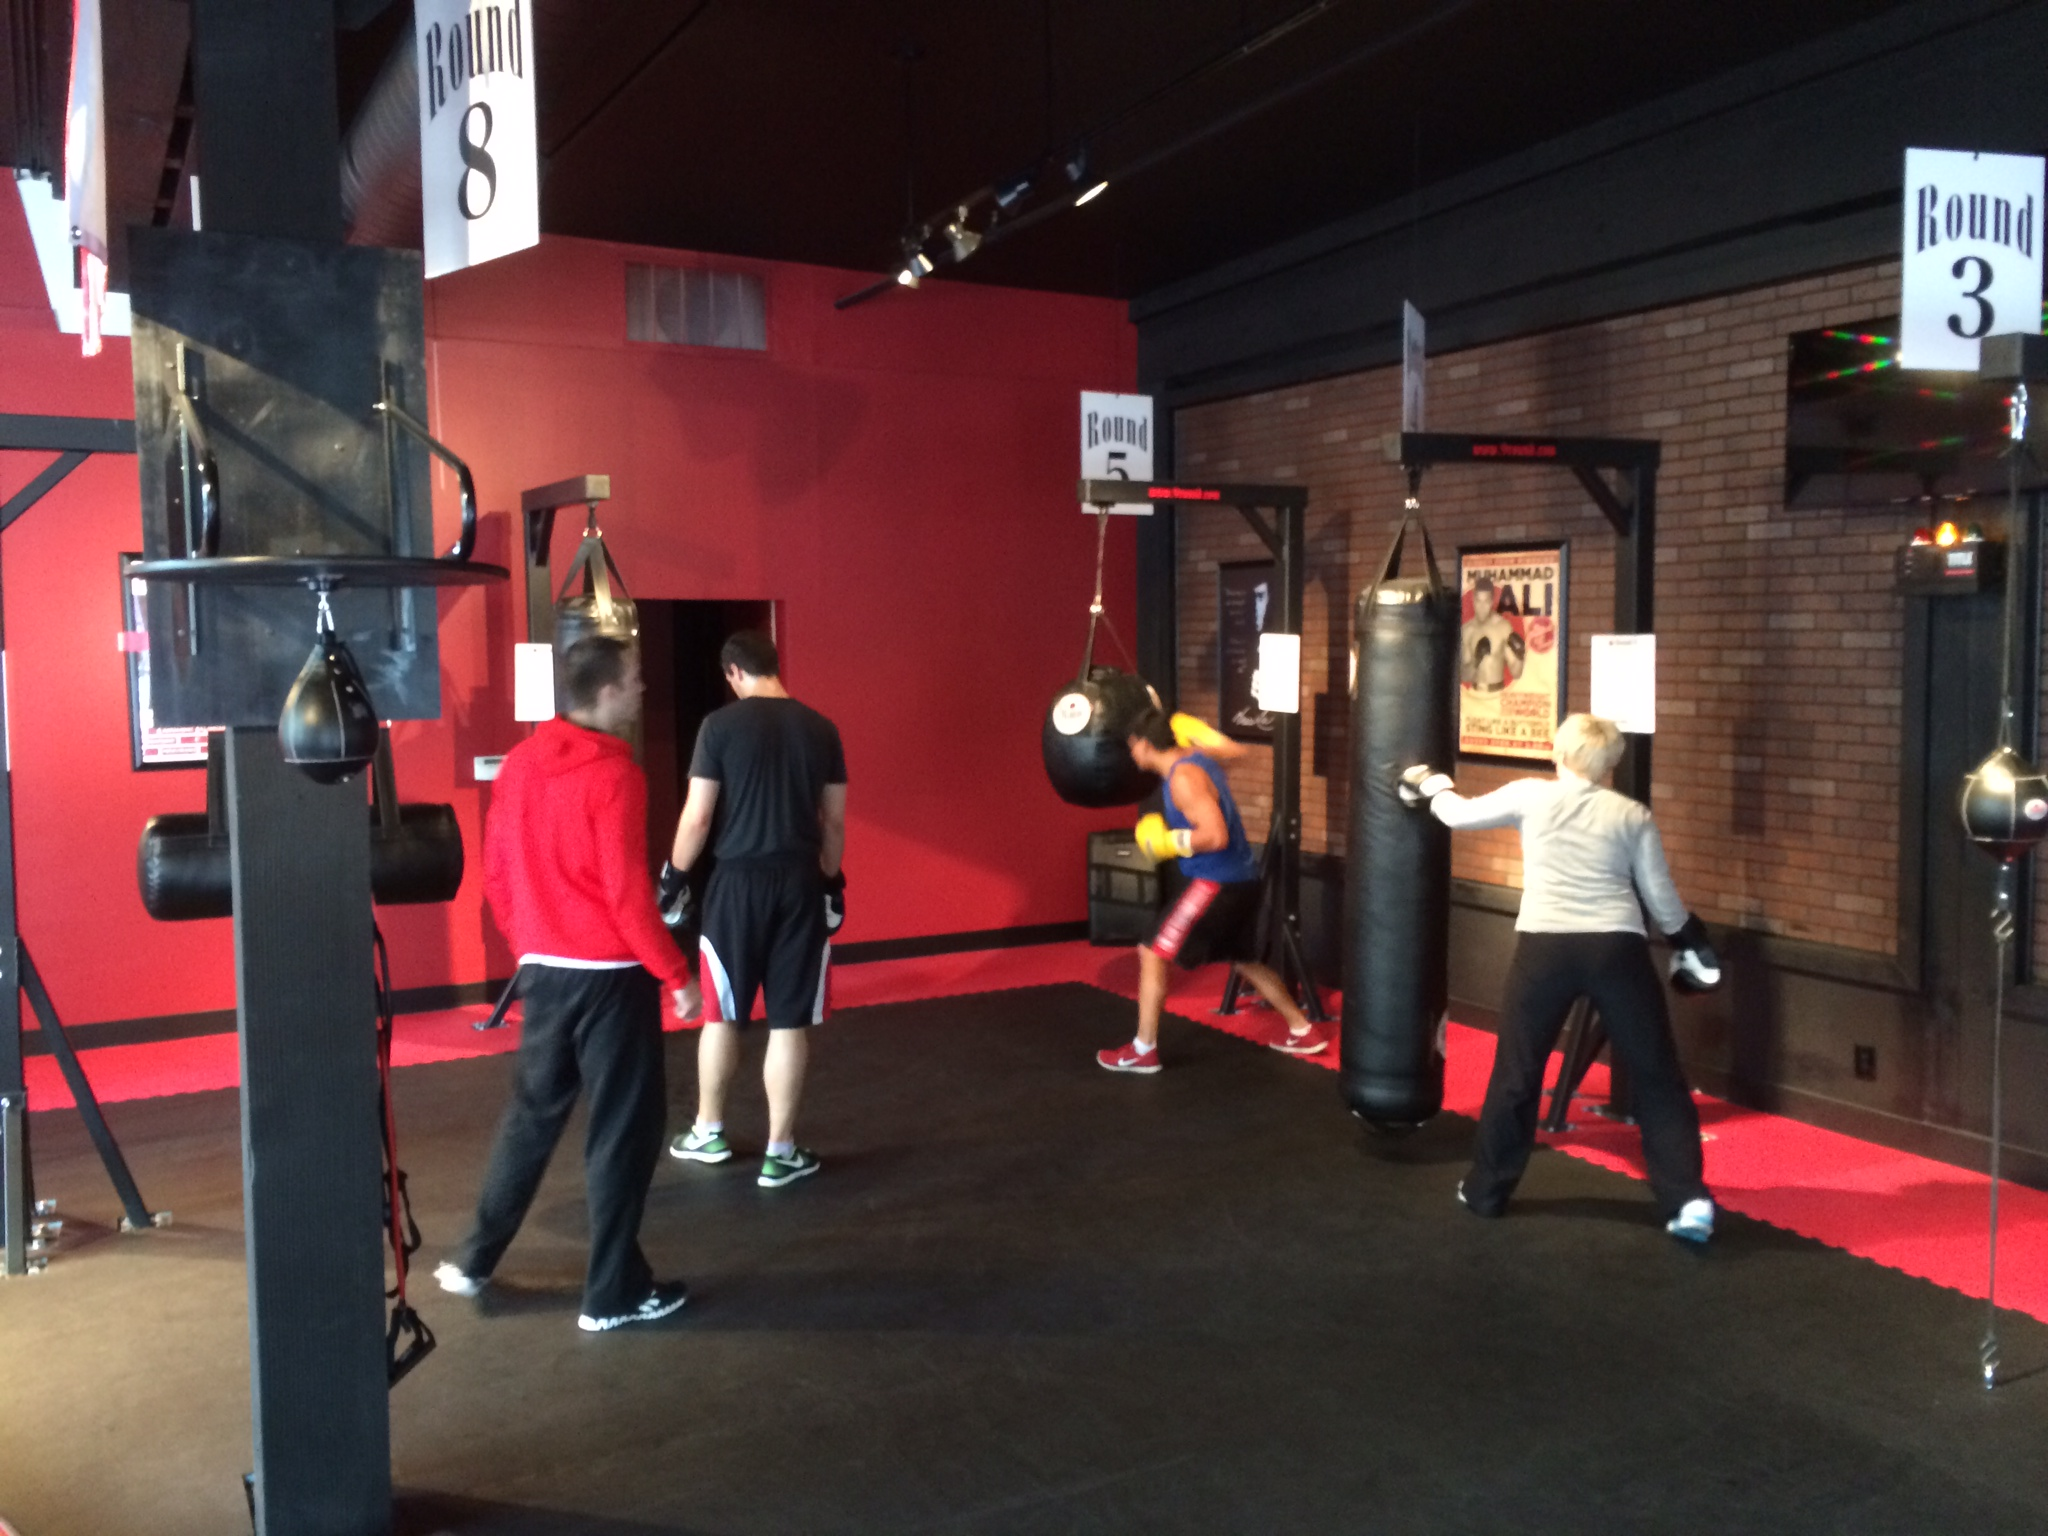 Funky Front Doors Gym Review 9round Pdx Funky Fitness Pdx